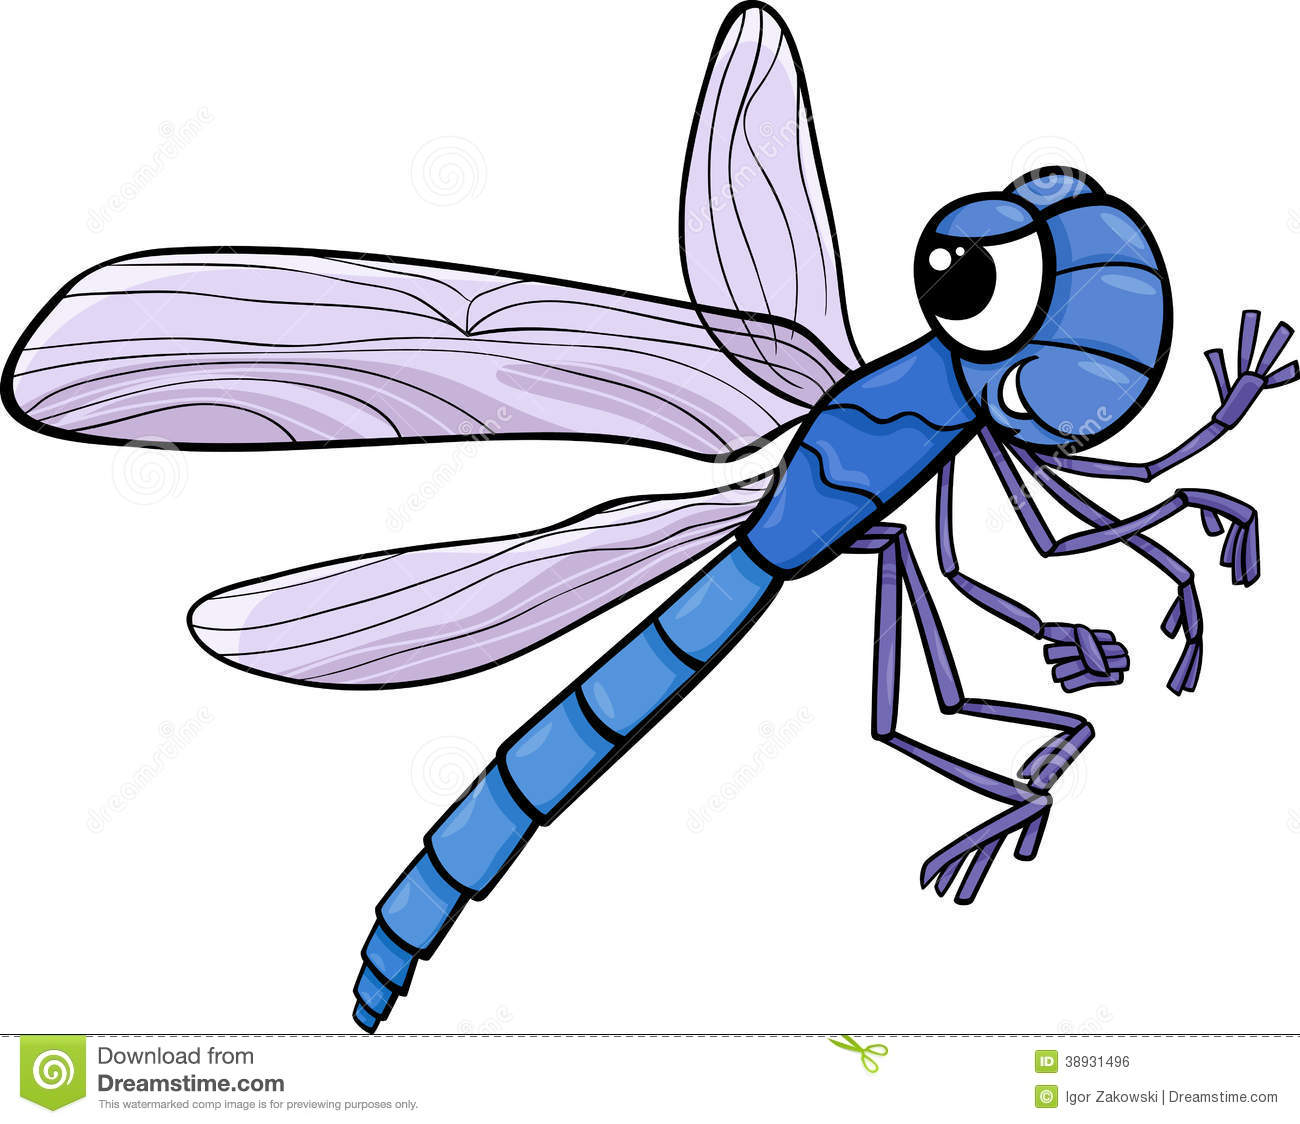 Bugs clipart realistic For Dragonfly Green & Pix